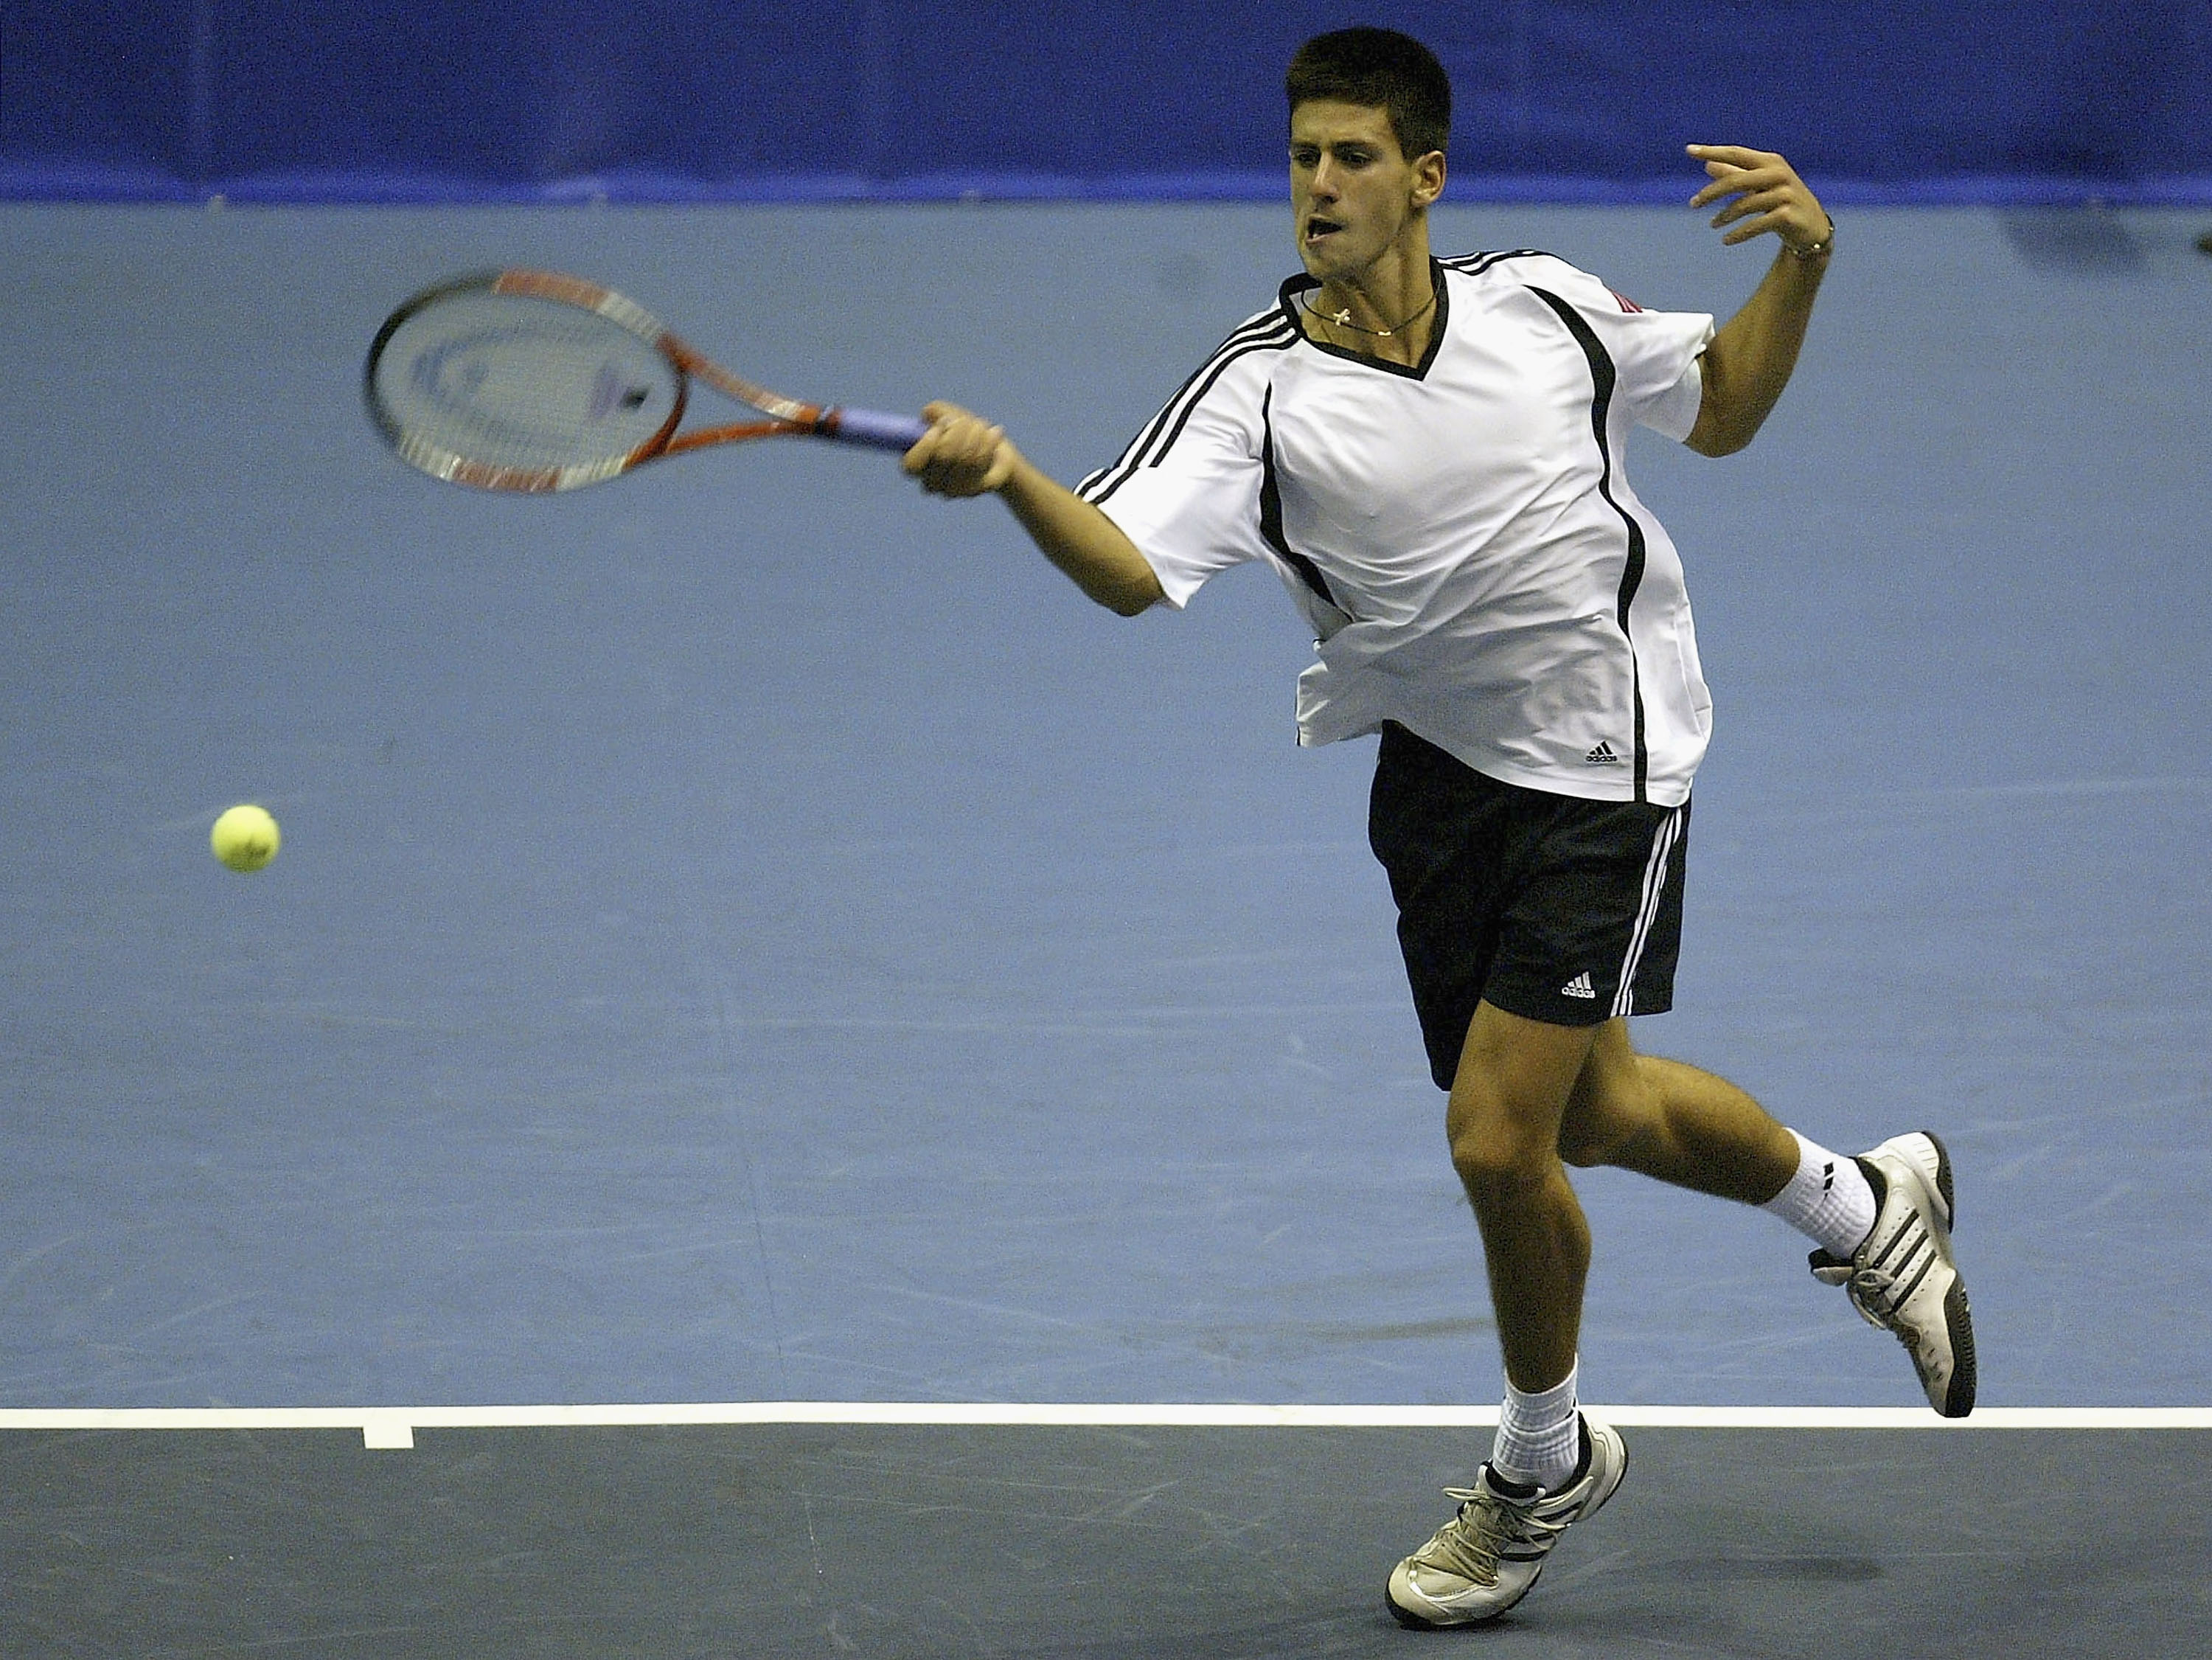 Originally clad in Adidas, a skinny 16-year-old Djokovic was swimming in his baggy shirts.